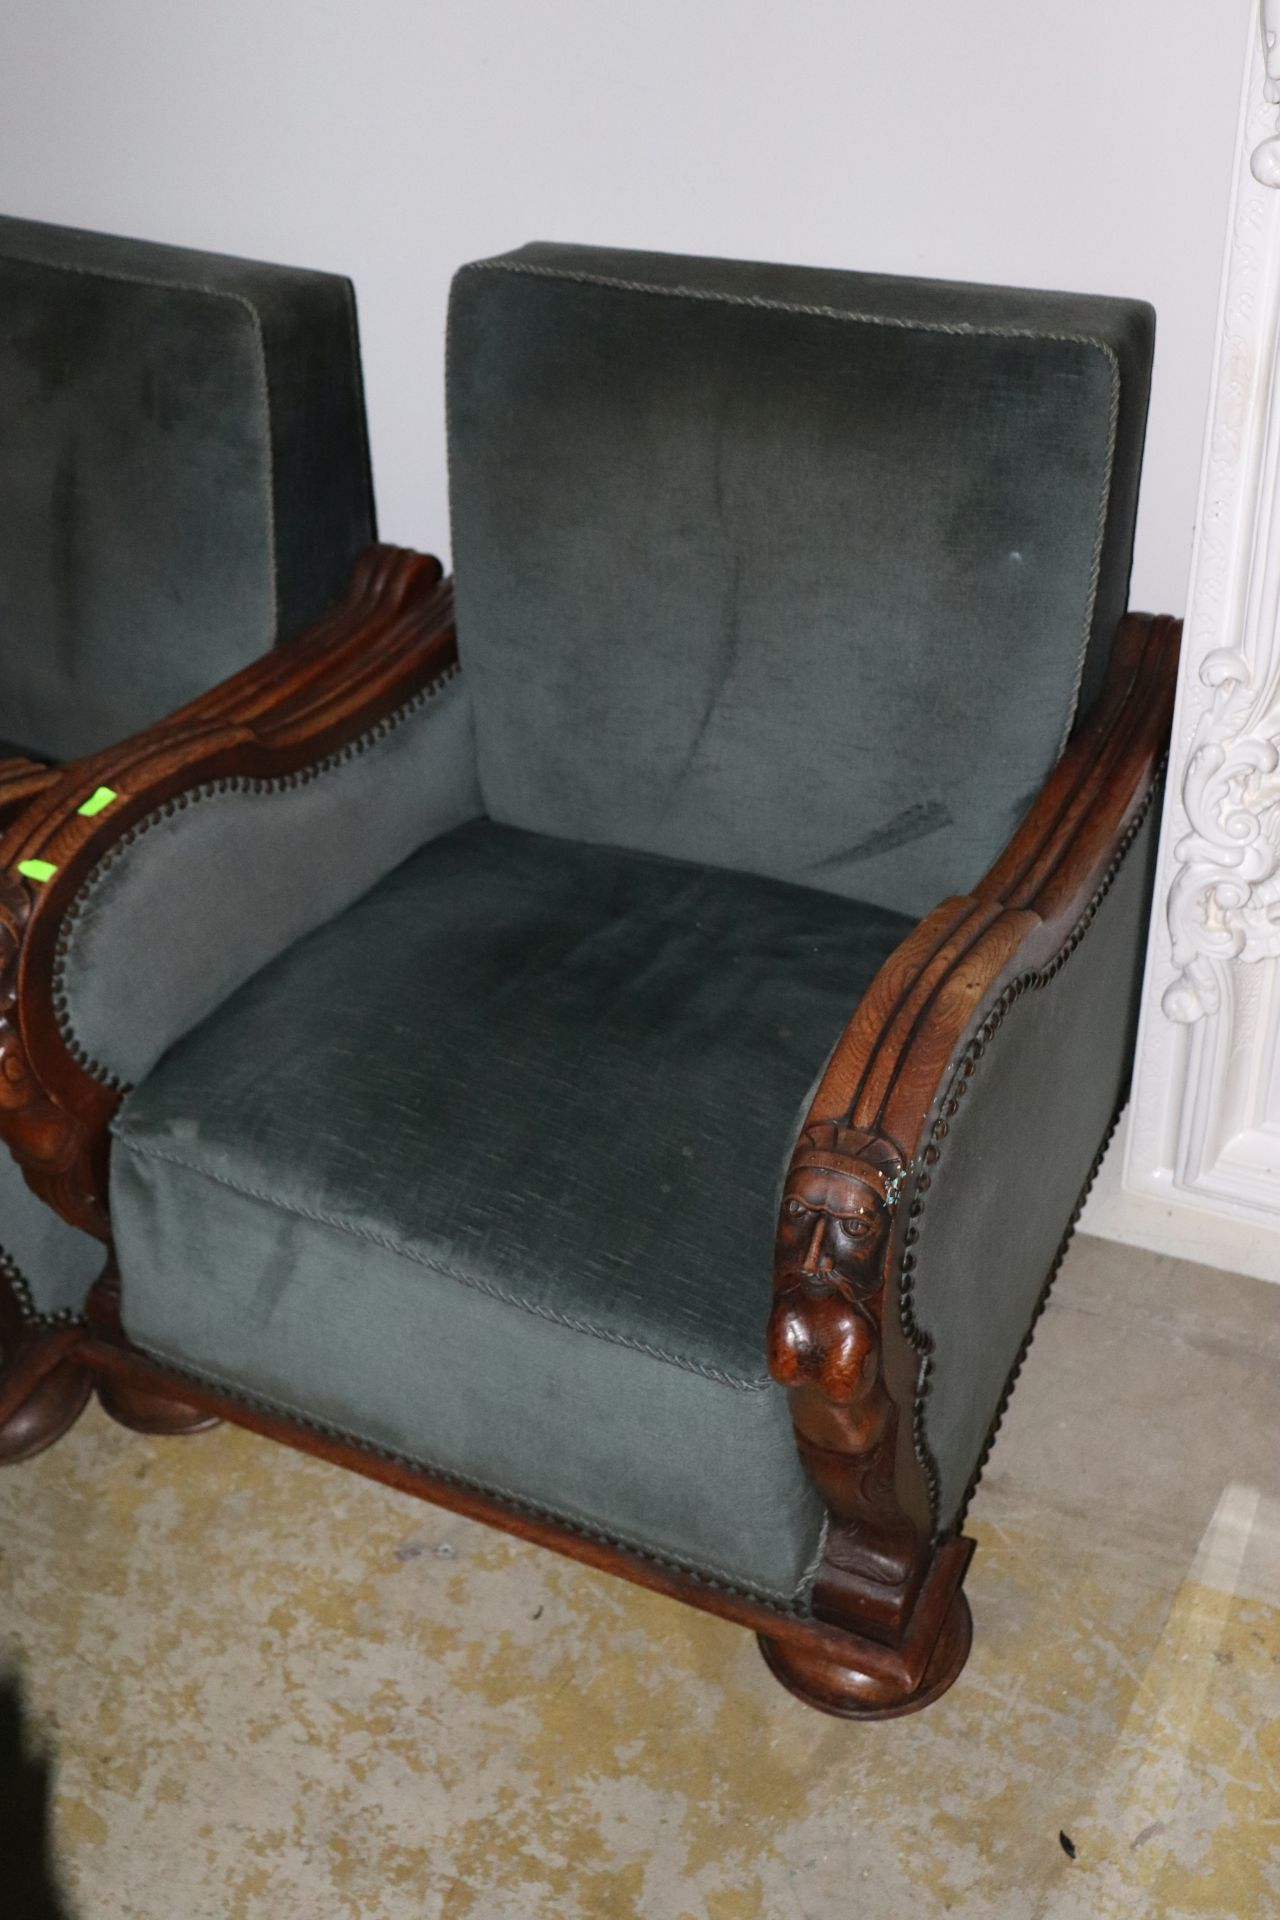 Lot 149 - Carved wooden lounge chair